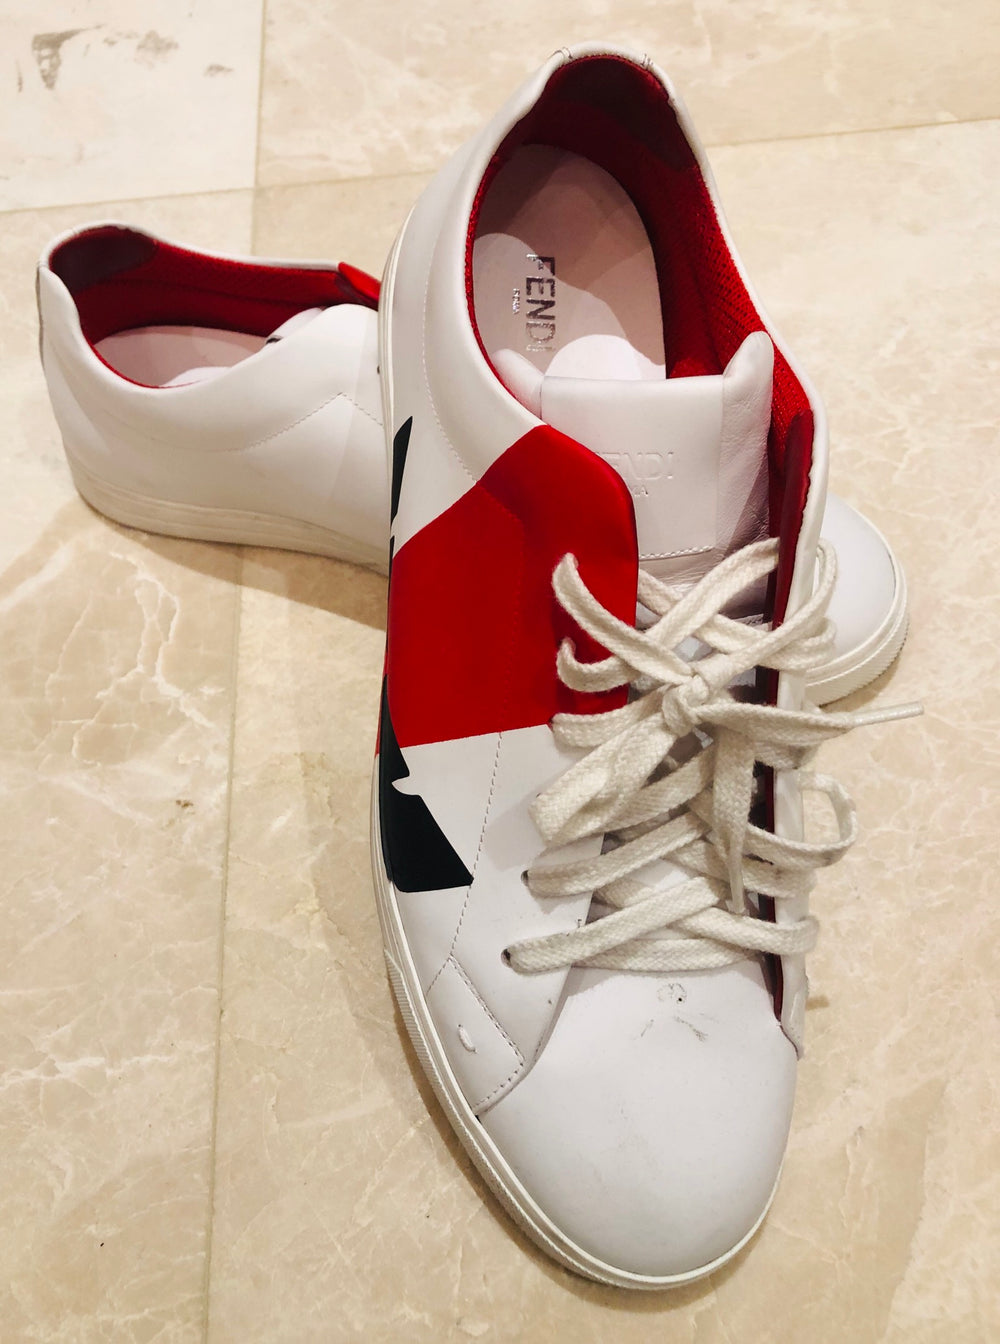 Fendi Bag Bugs Red/White Sneakers Sz 12